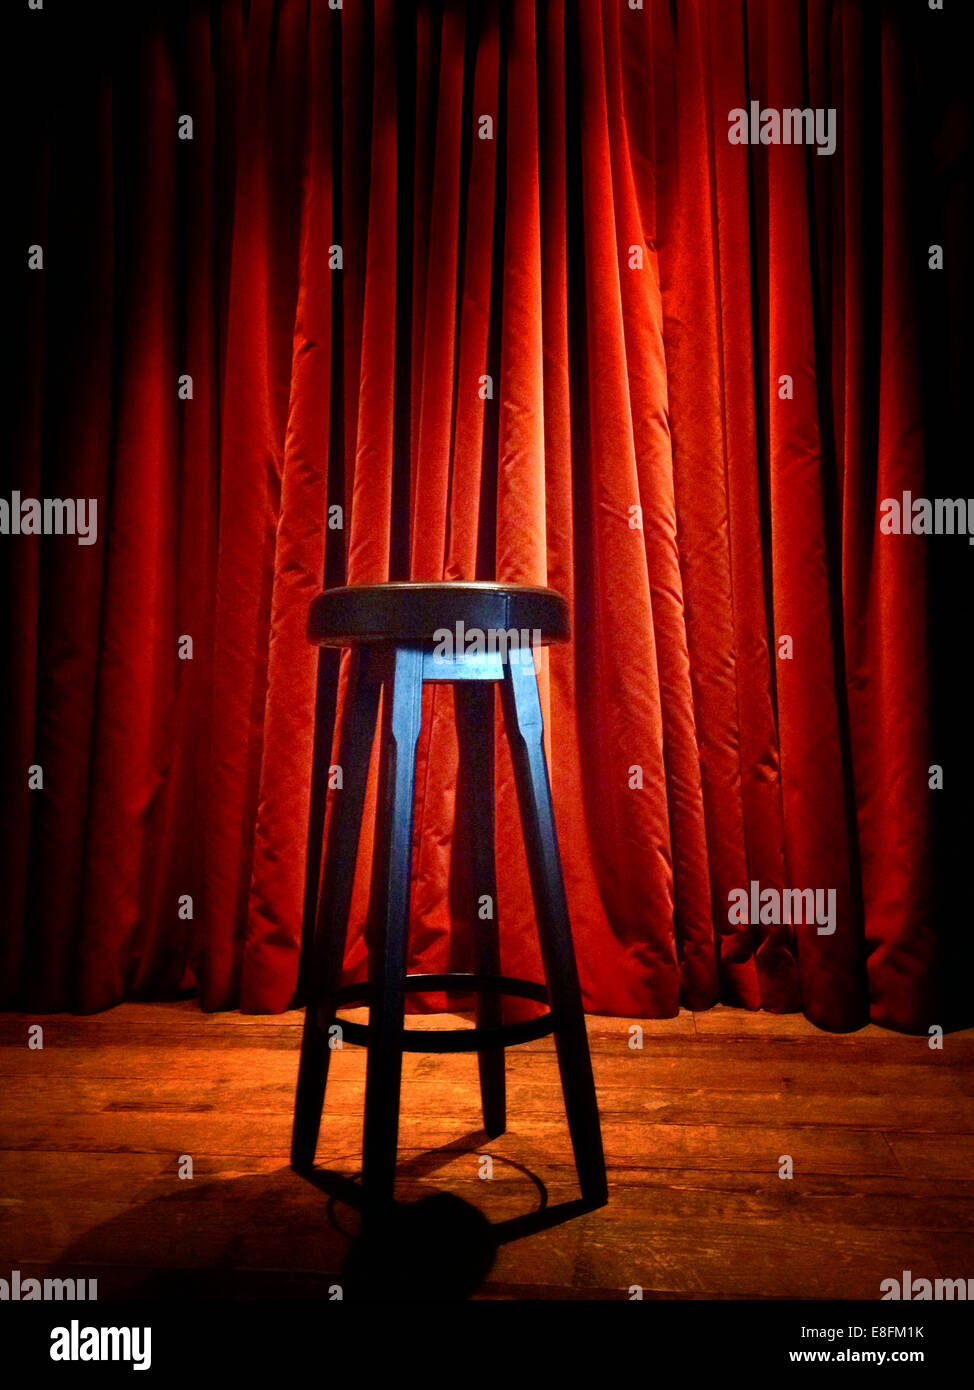 USA, California, Napa County, Napa, Stool on stage in front of red curtain - Stock Image